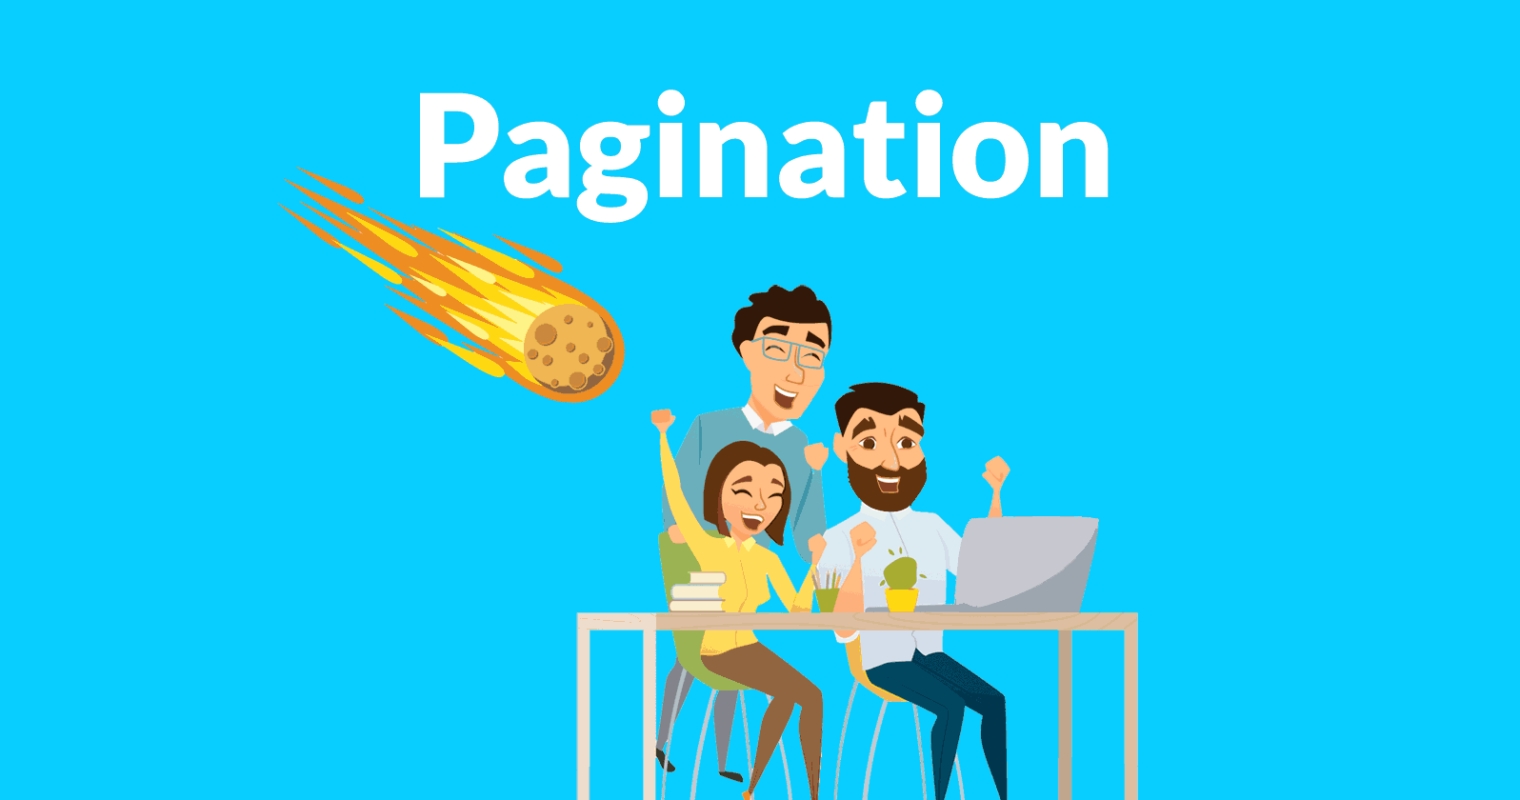 Excessively Deep Pagination Can Impact Search Traffic